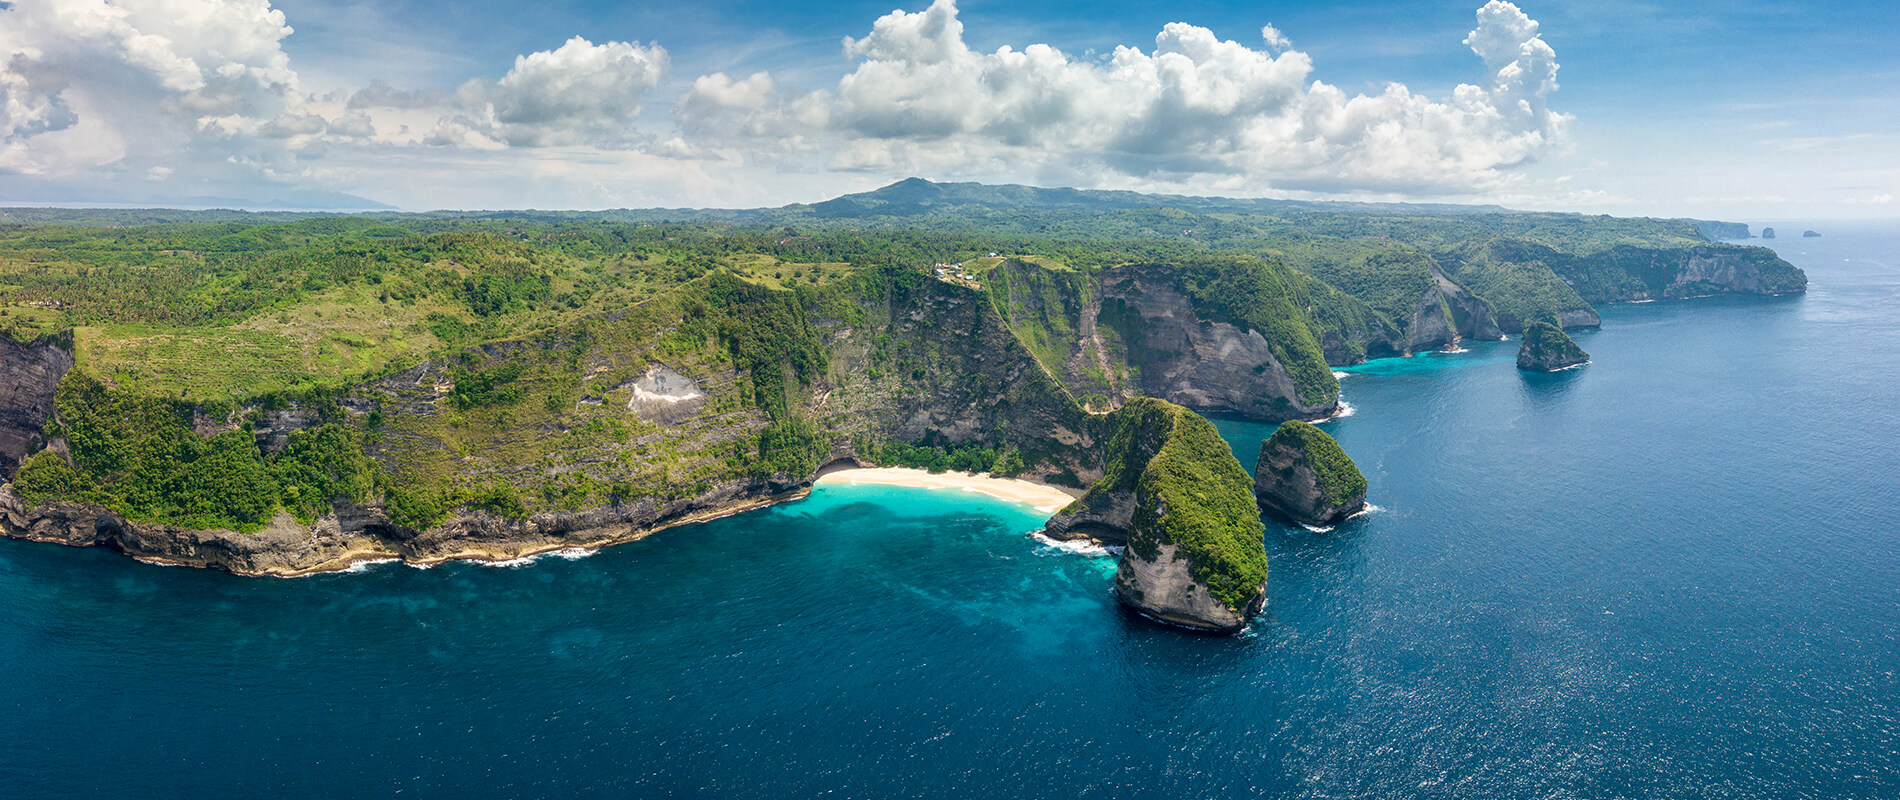 Nusa Penida, the most pristine island of Indonesia